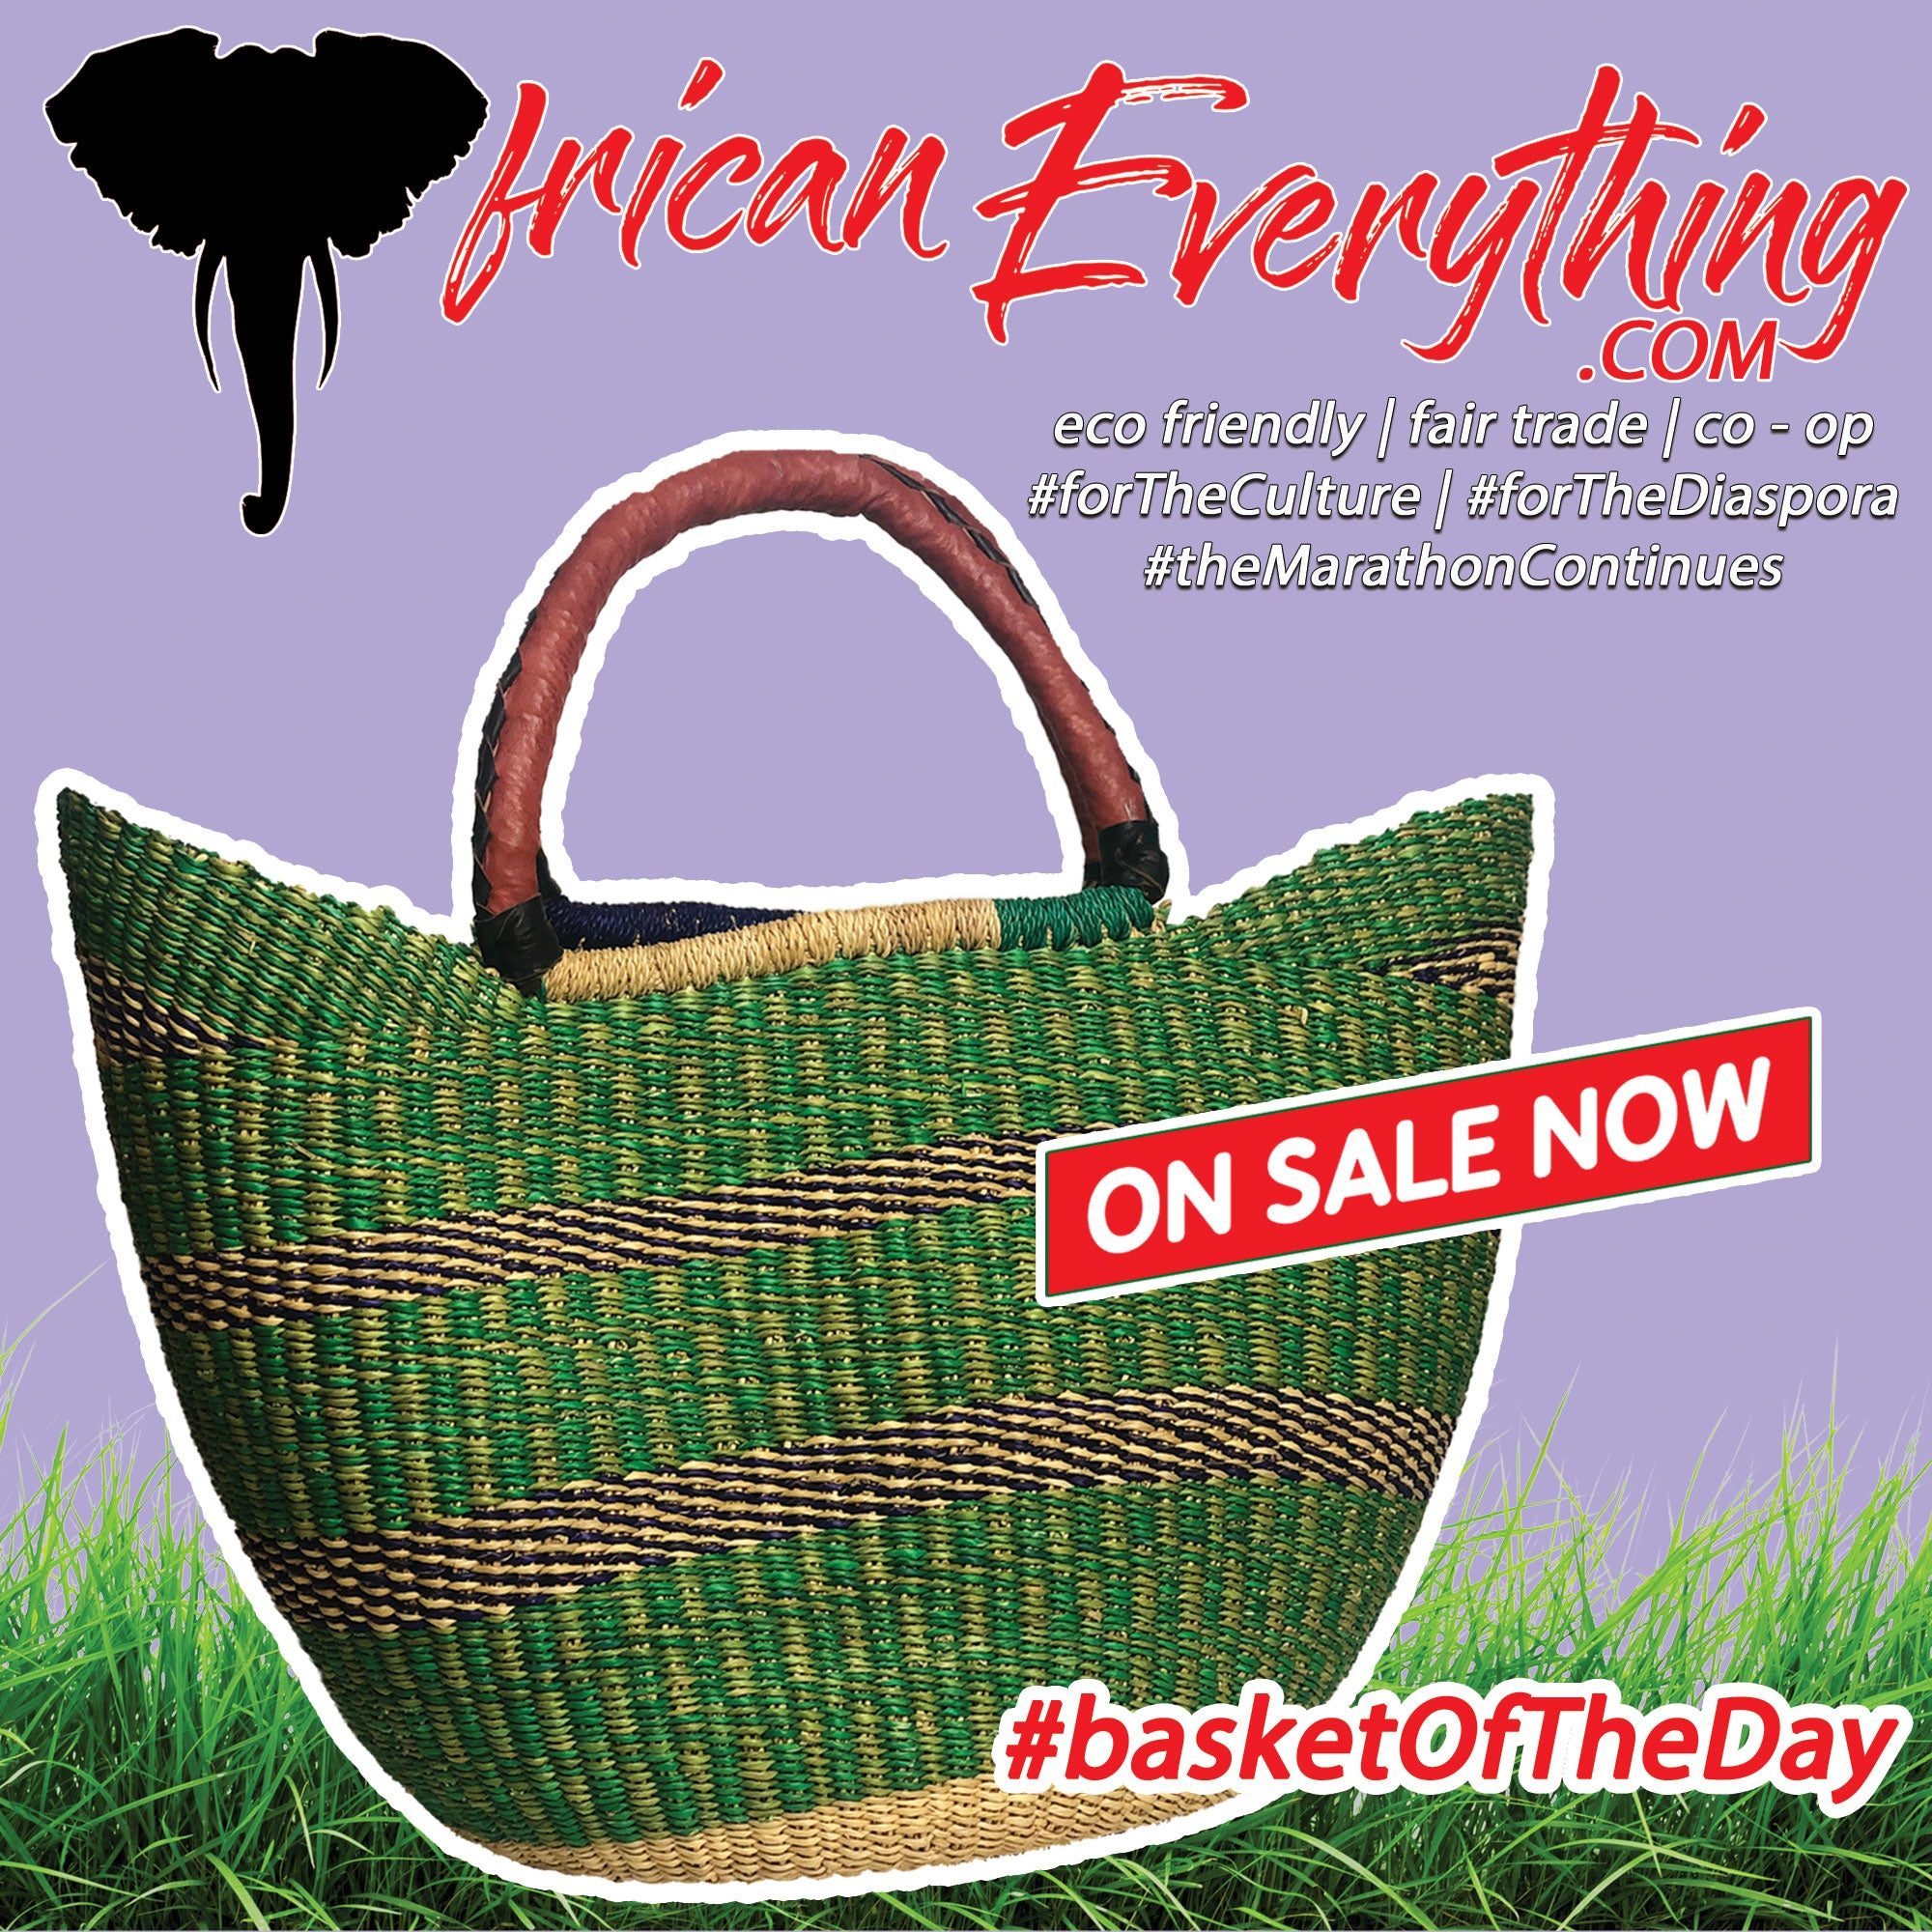 Basket Of The Day